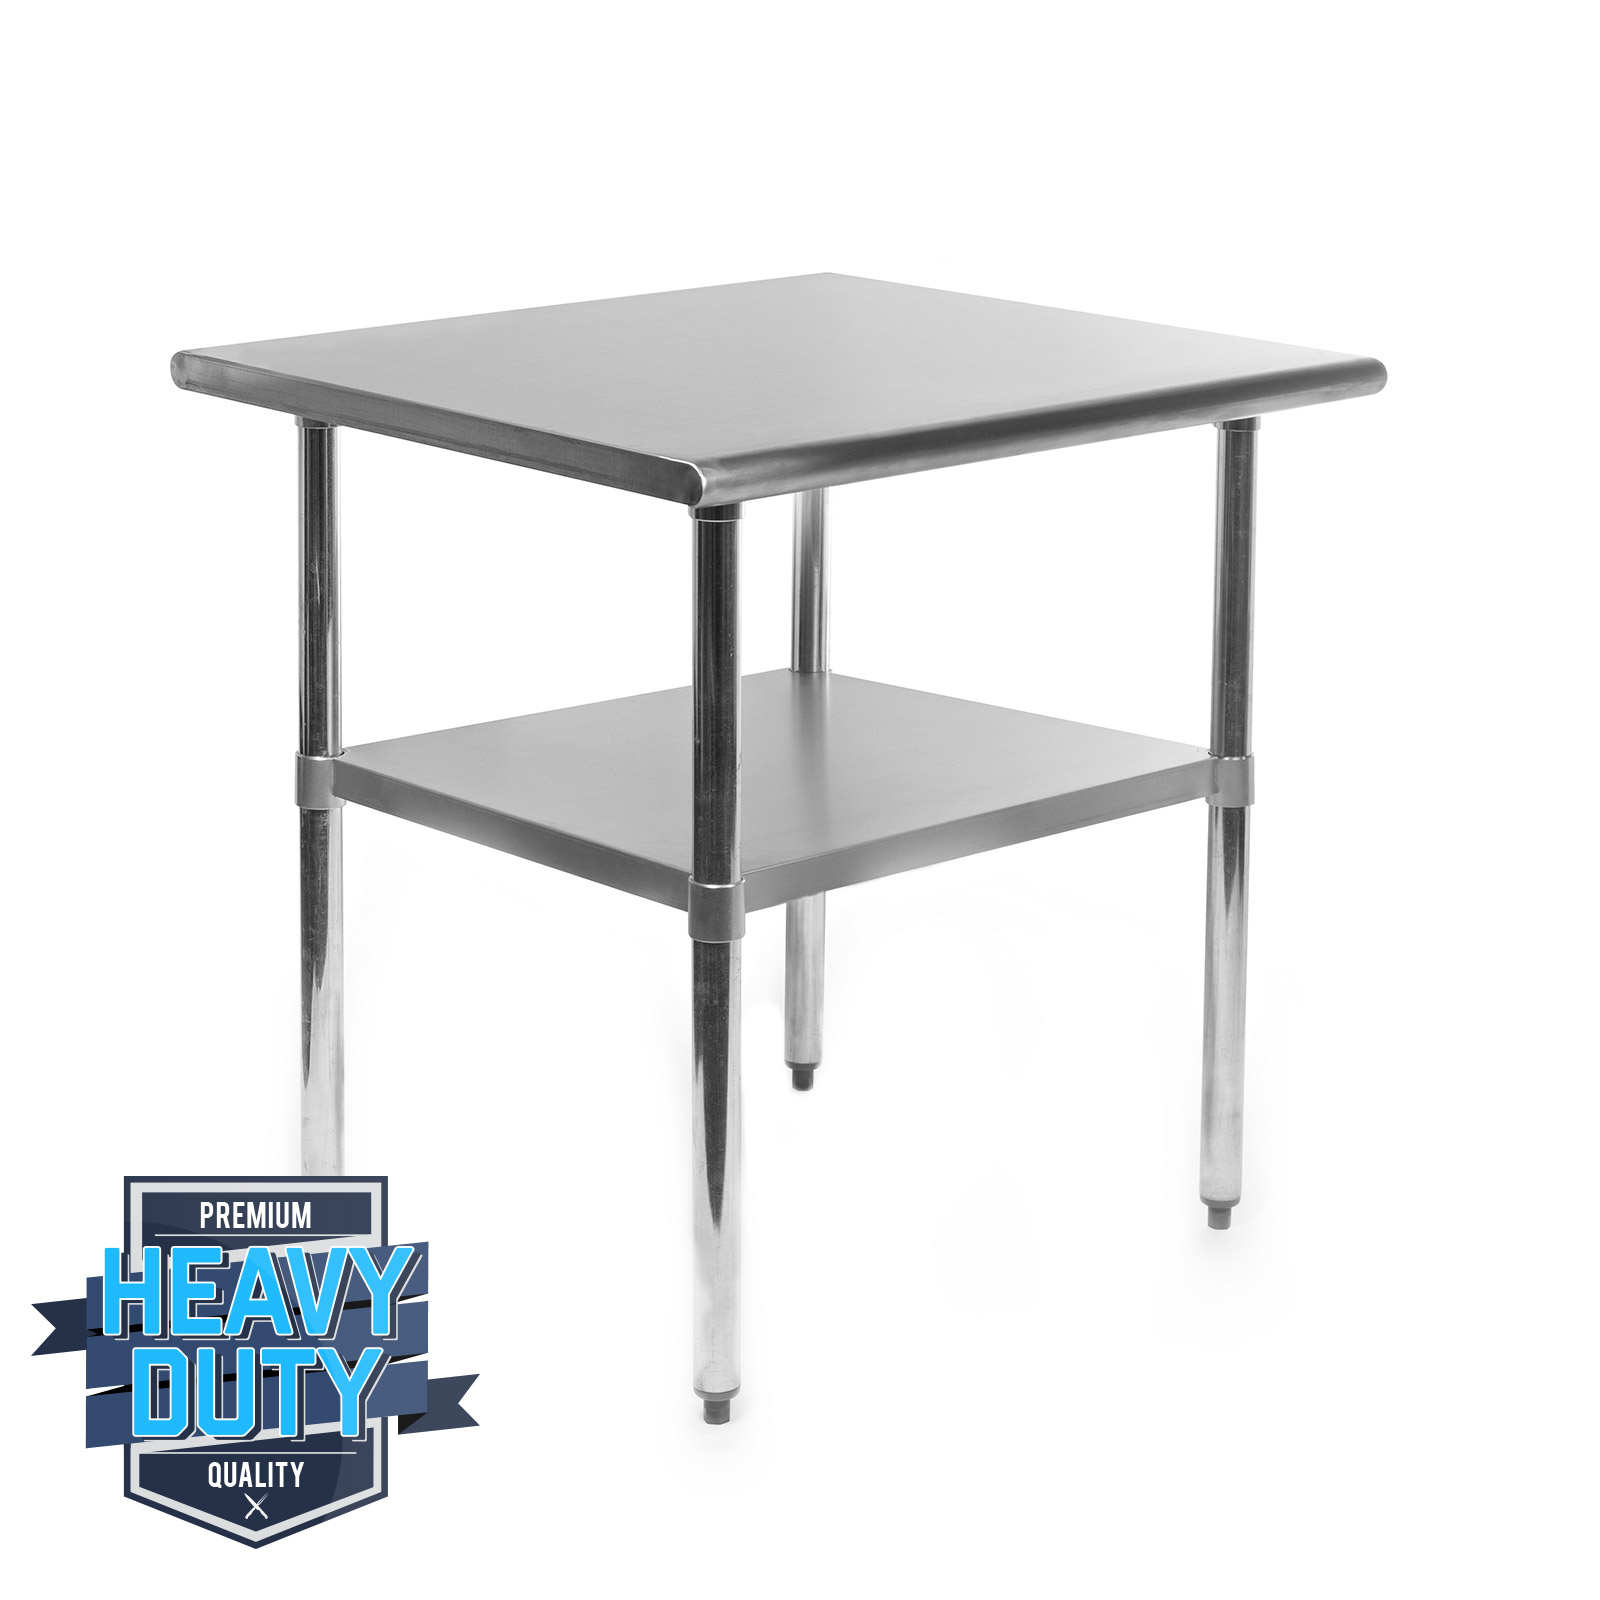 Stainless steel commercial kitchen work food prep table 24 x 30 picclick - Industrial kitchen table stainless steel ...